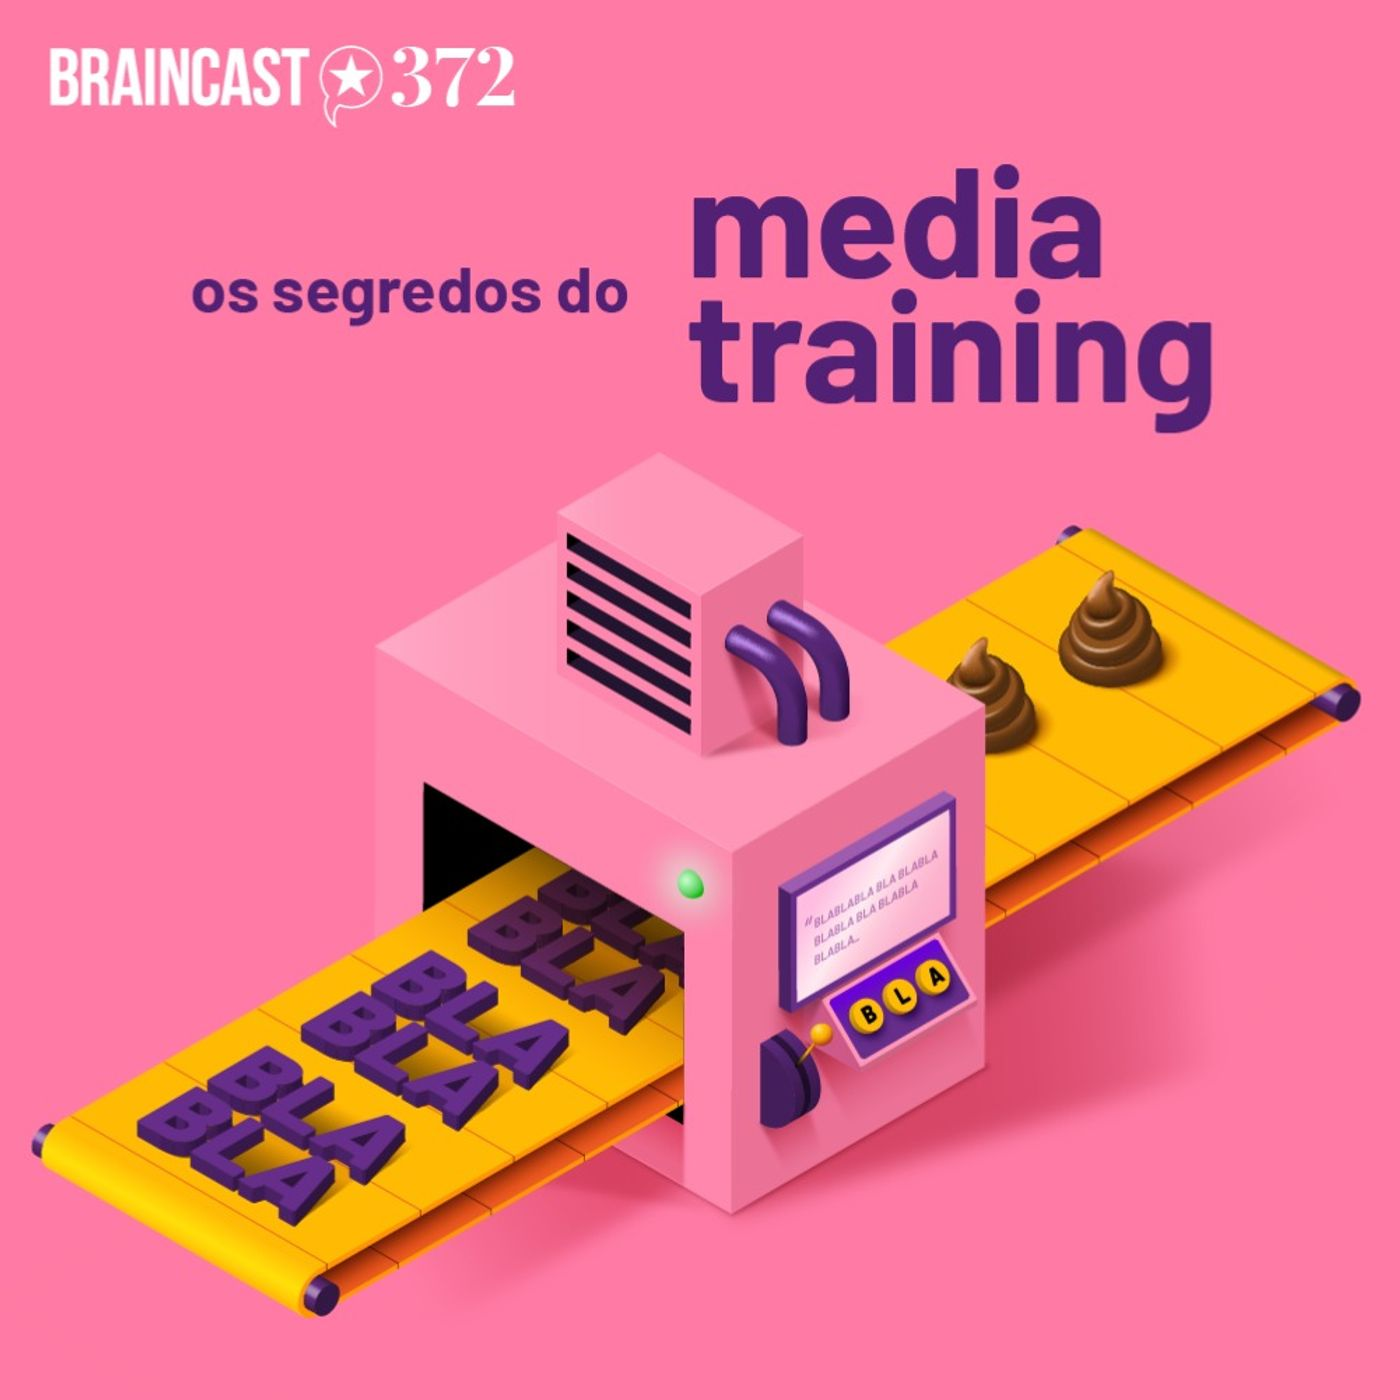 Os segredos do media training